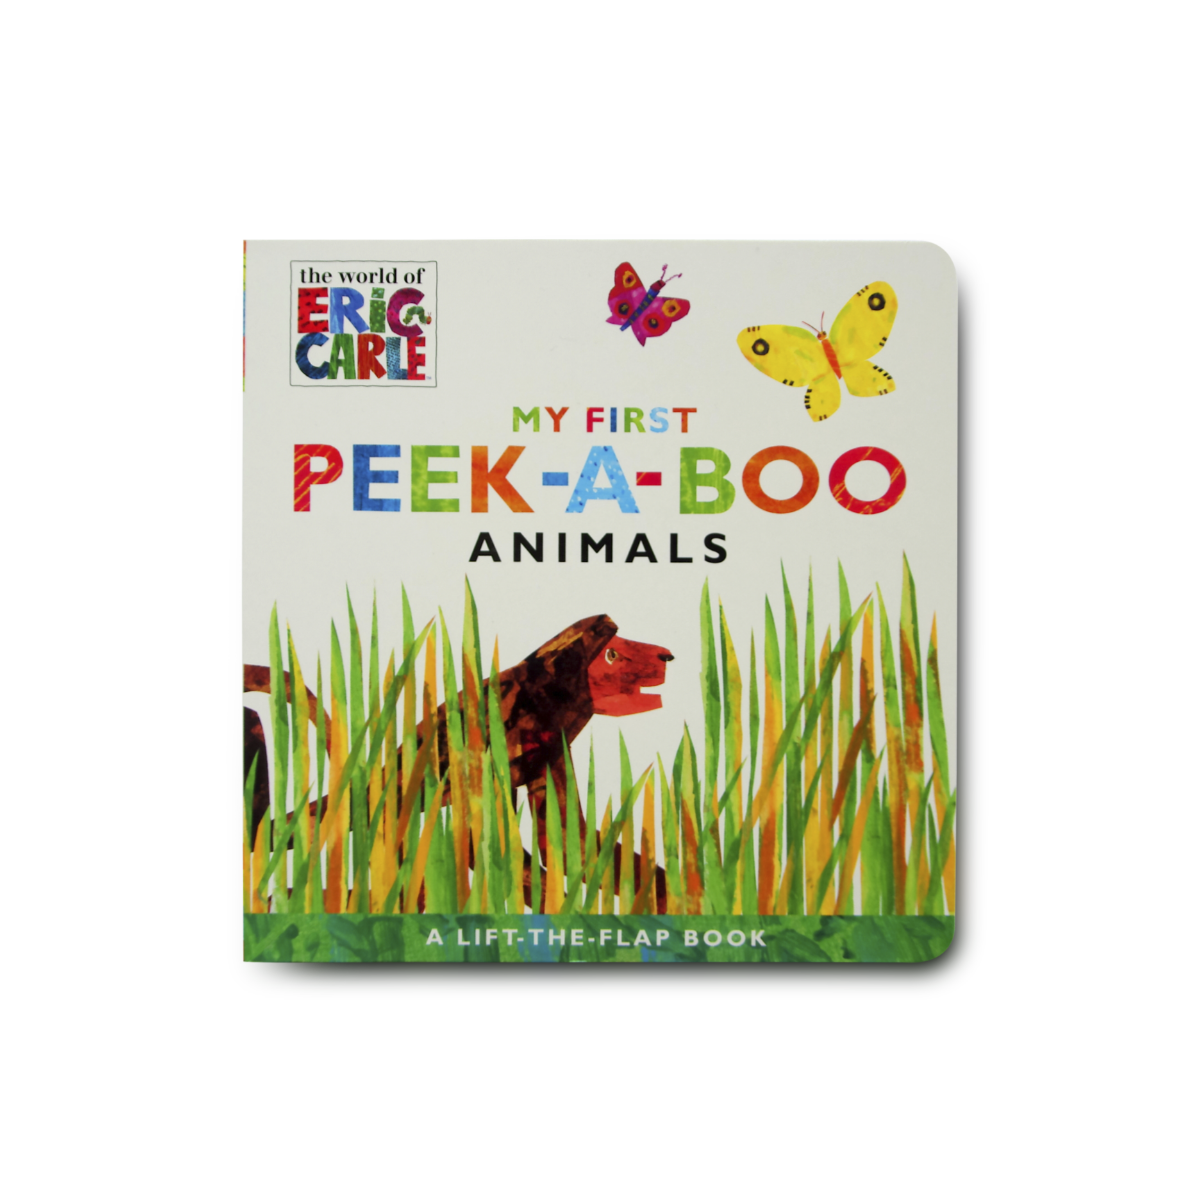 My First Peek-a-Boo Animals (The World of Eric Carle) - Me Books Asia Store